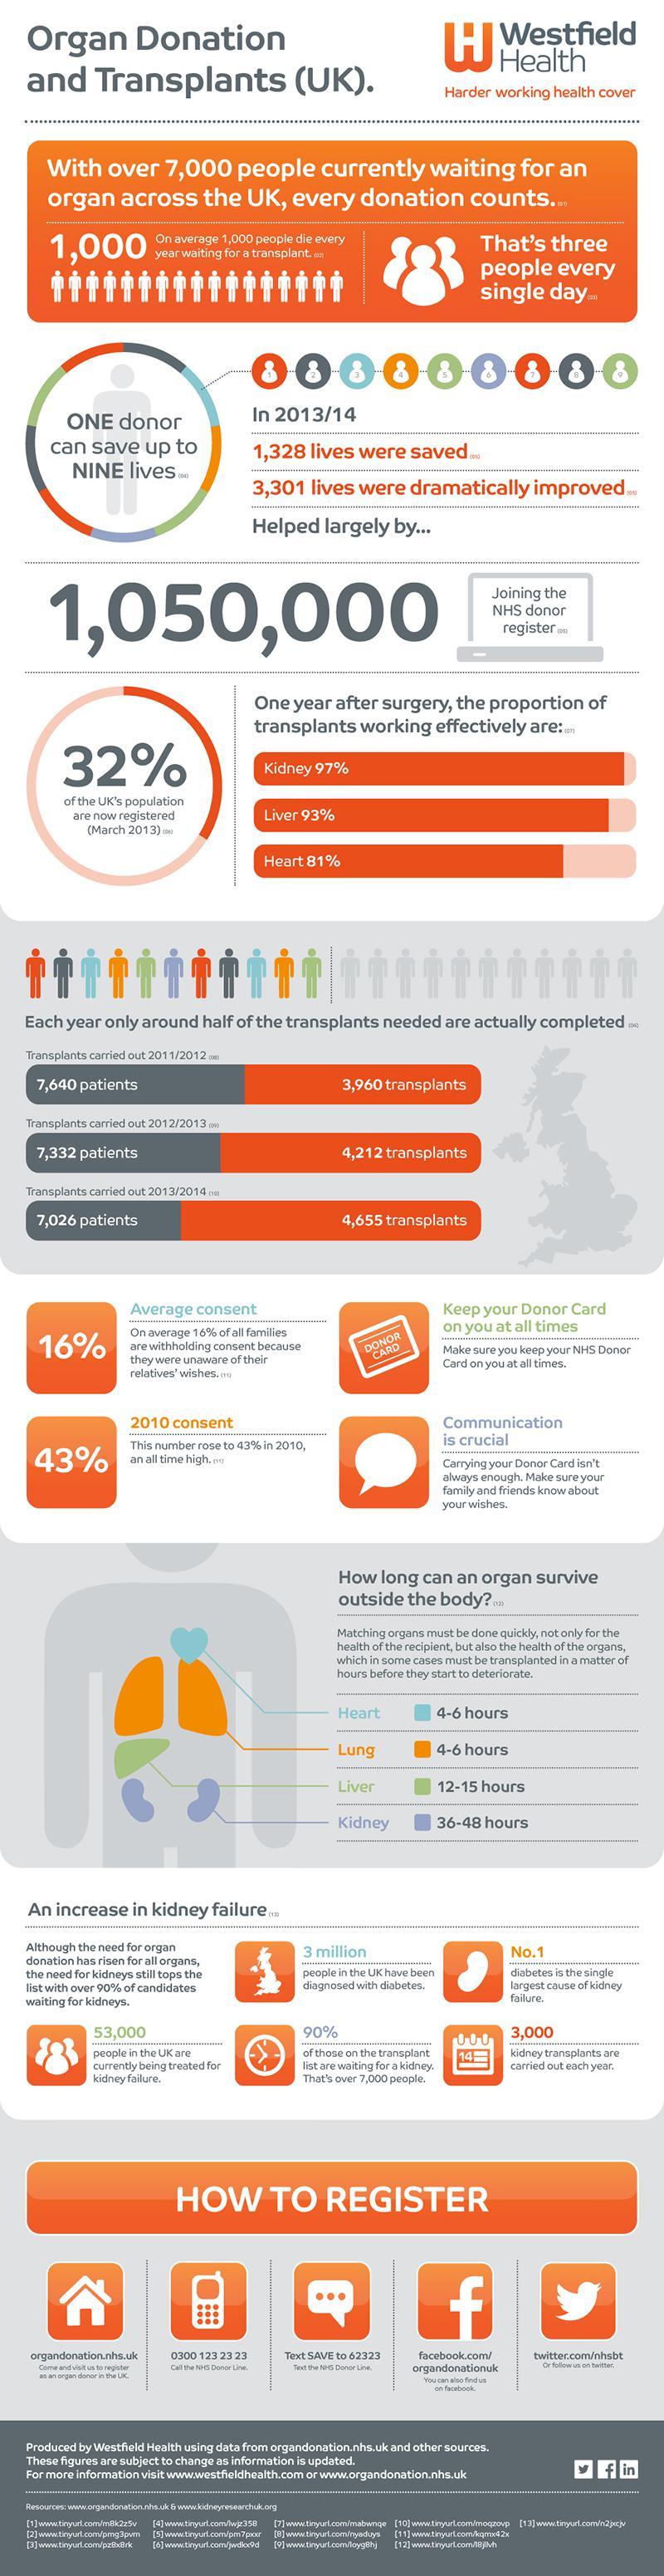 Organ Donation & Transplant Infographic by Westfield Health